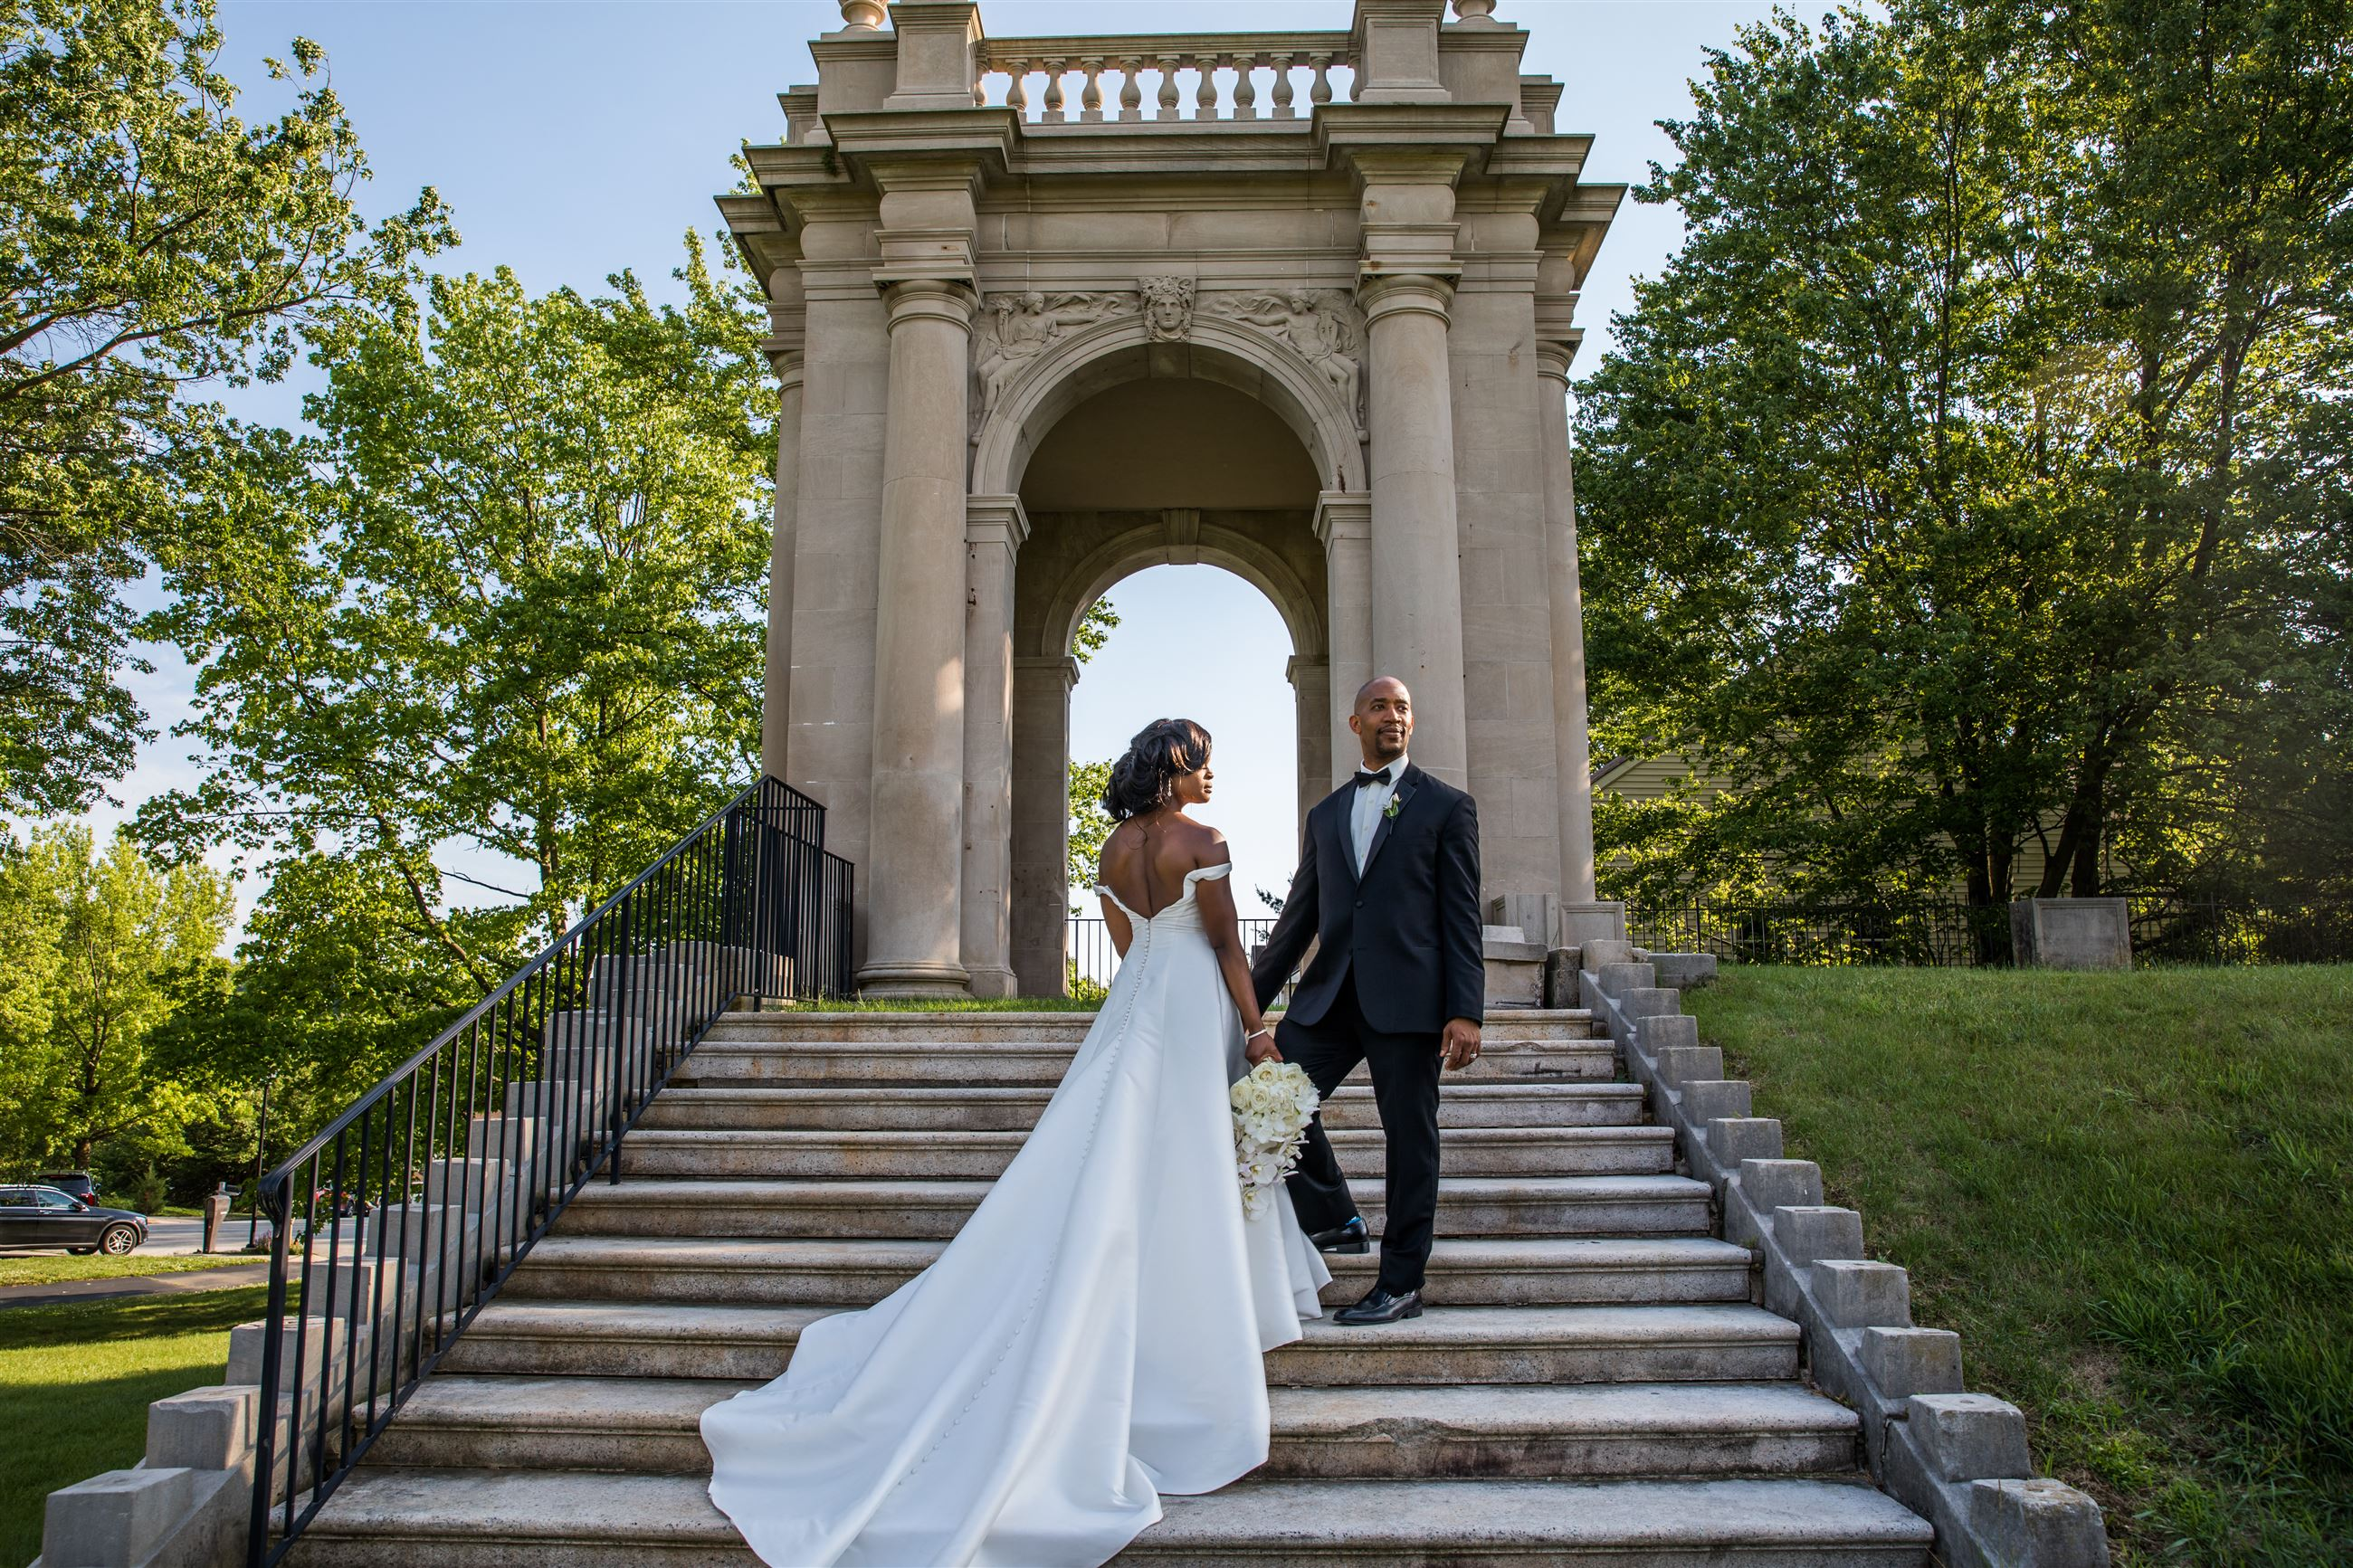 Inspiring Couple Kerry-Anne and Michael Gordon Tie The Knot In This Beautiful Philadelphia Wedding